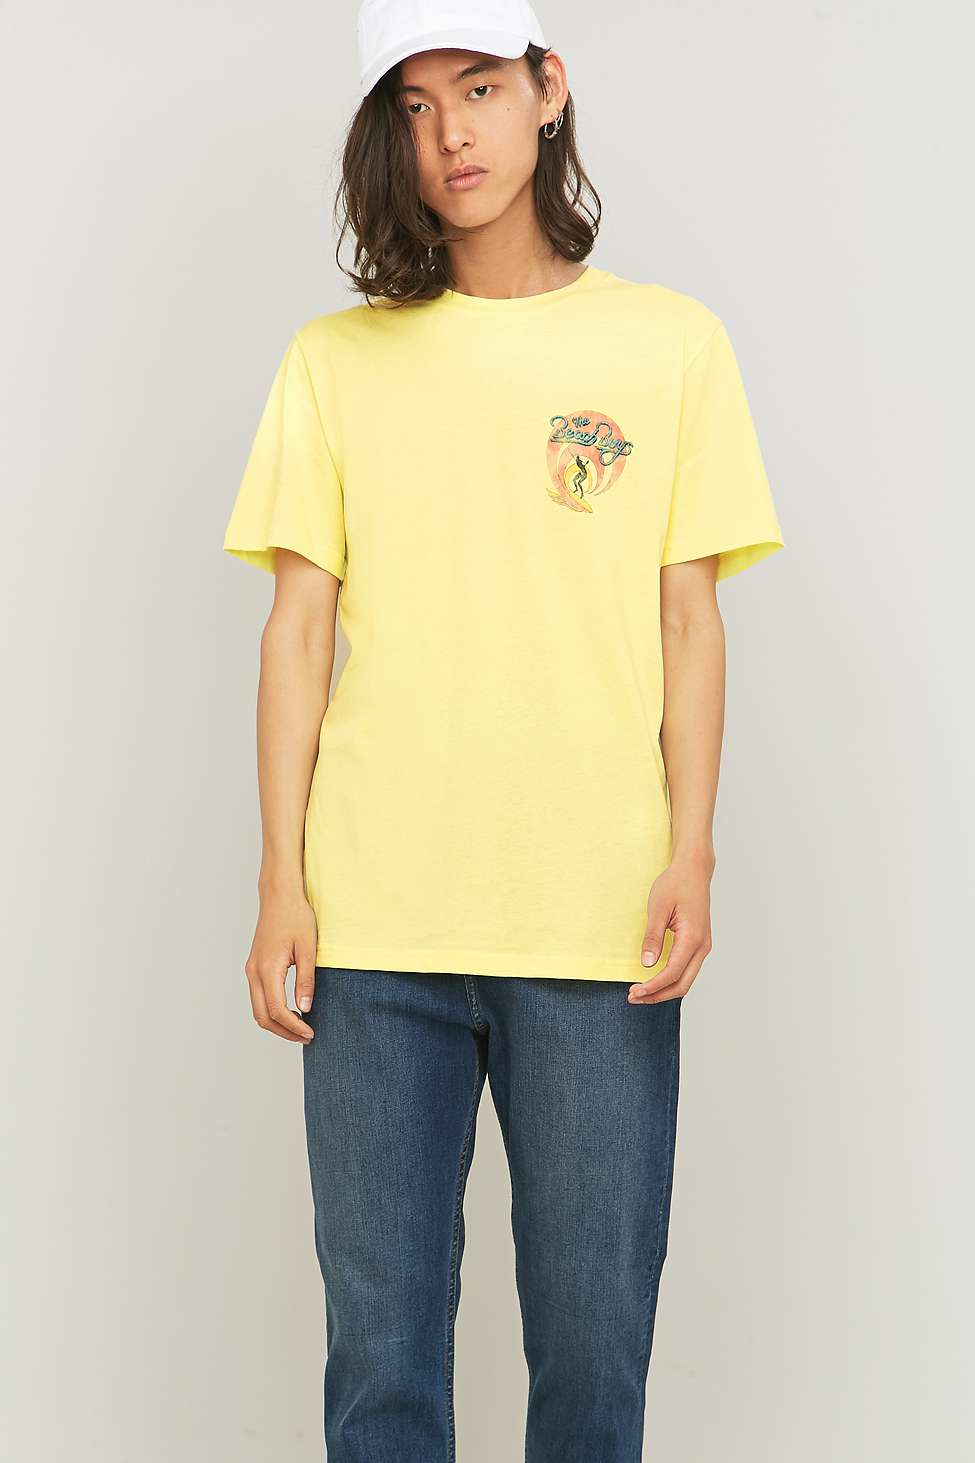 Urban outfitters Beach Boys Yellow T-shirt in Yellow for Men | Lyst